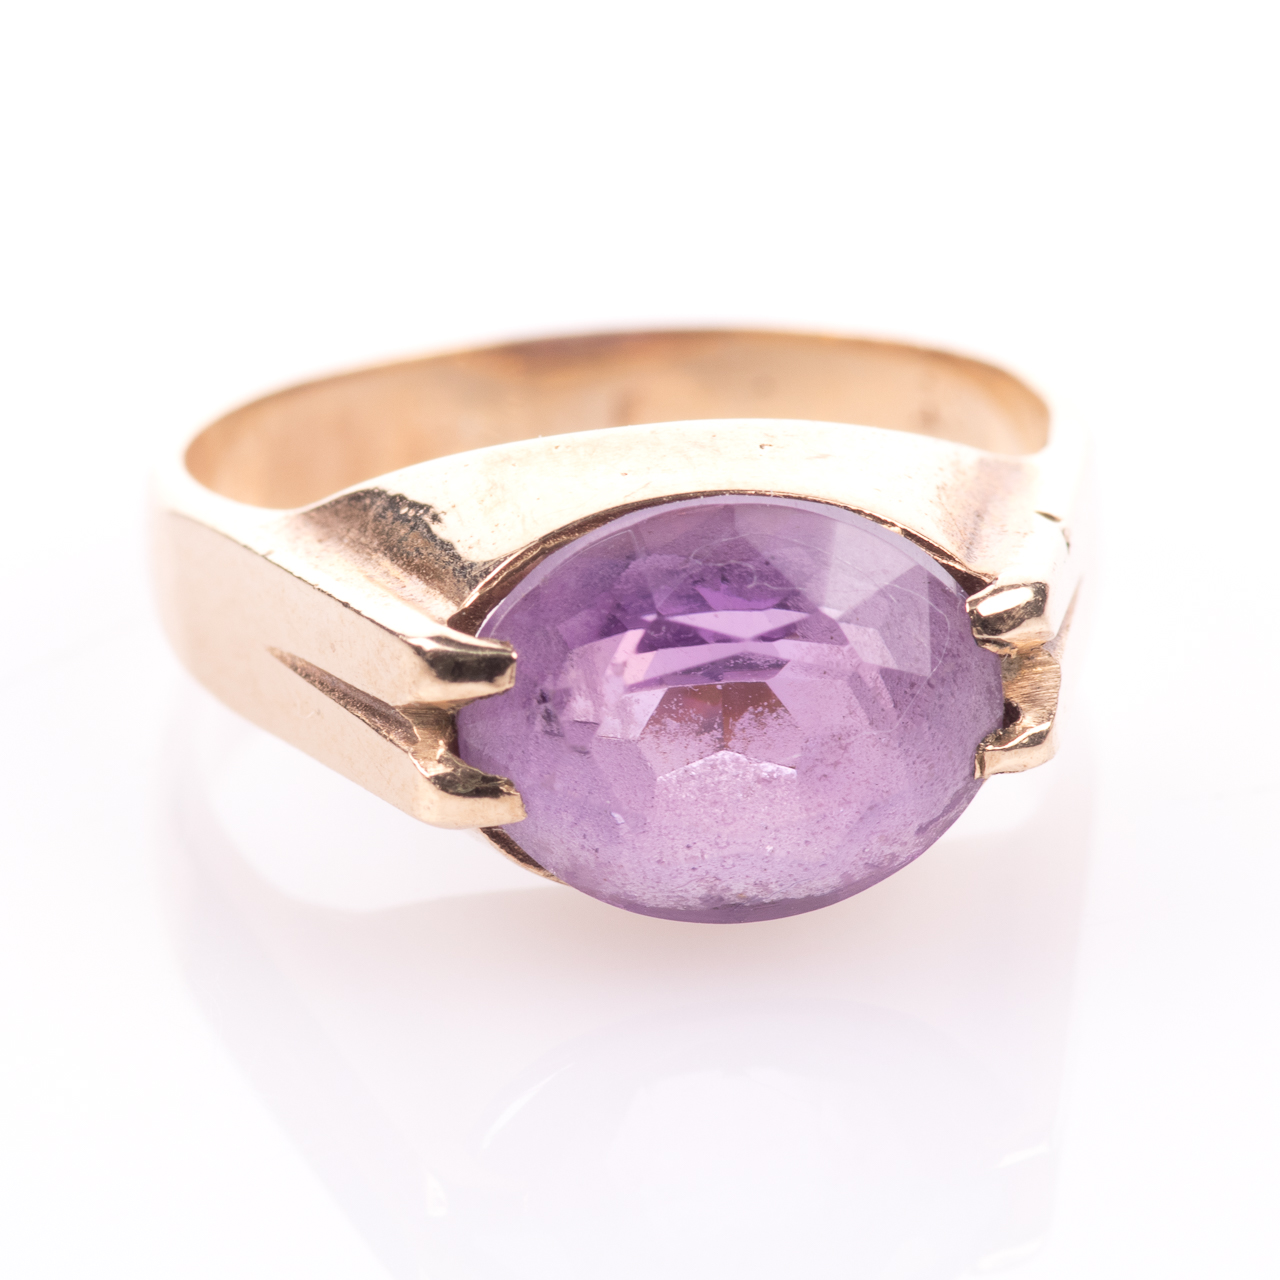 9ct Gold 3.20ct Amethyst Ring - Image 3 of 7